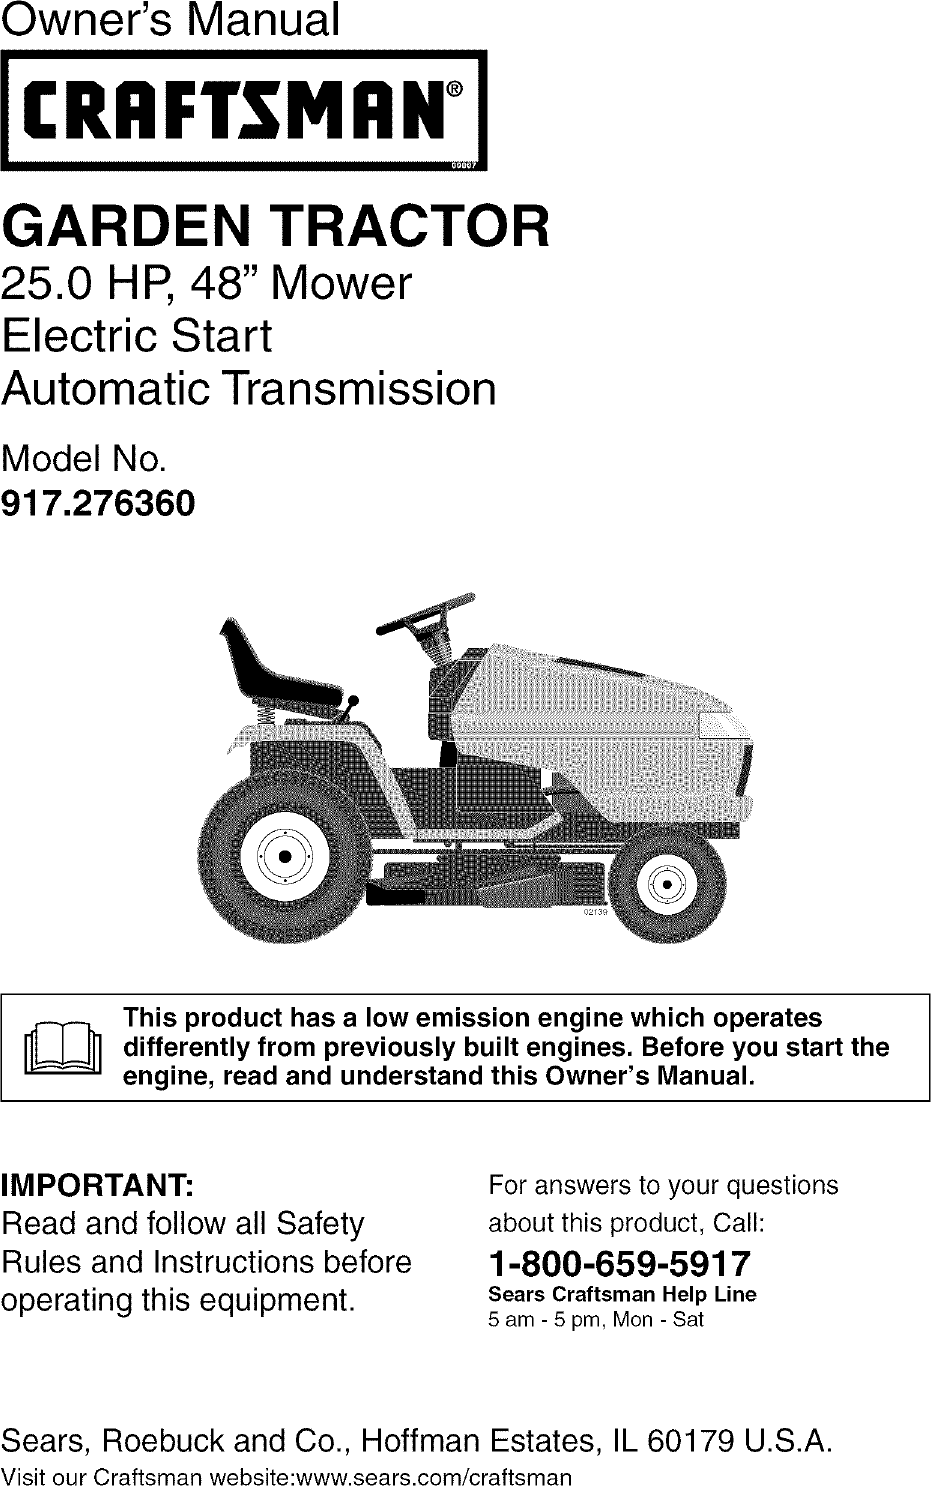 Craftsman 917276360 User Manual Garden Tractor Manuals And Guides Sears 26 Horse Kohler Engine Electrical Diagram L0504212